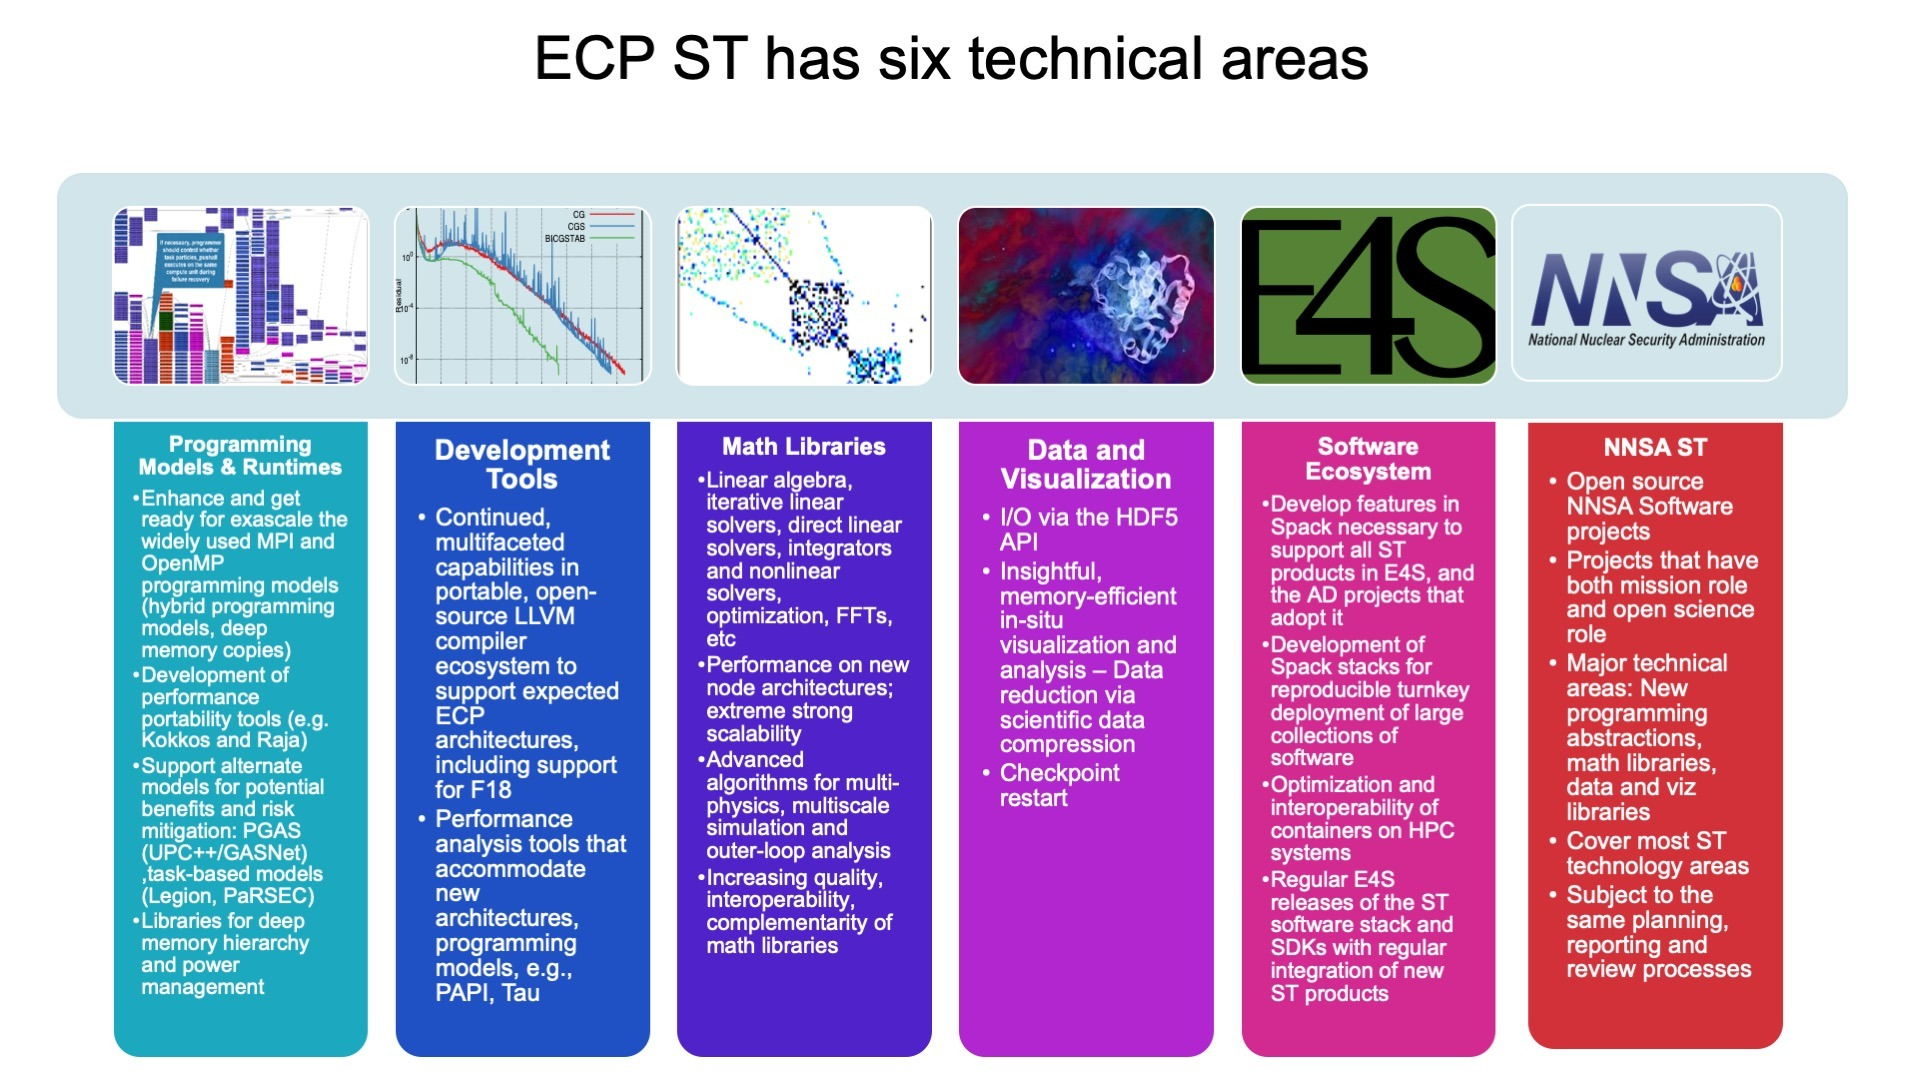 The six technical areas of the Exascale Computing Project Software Technology research